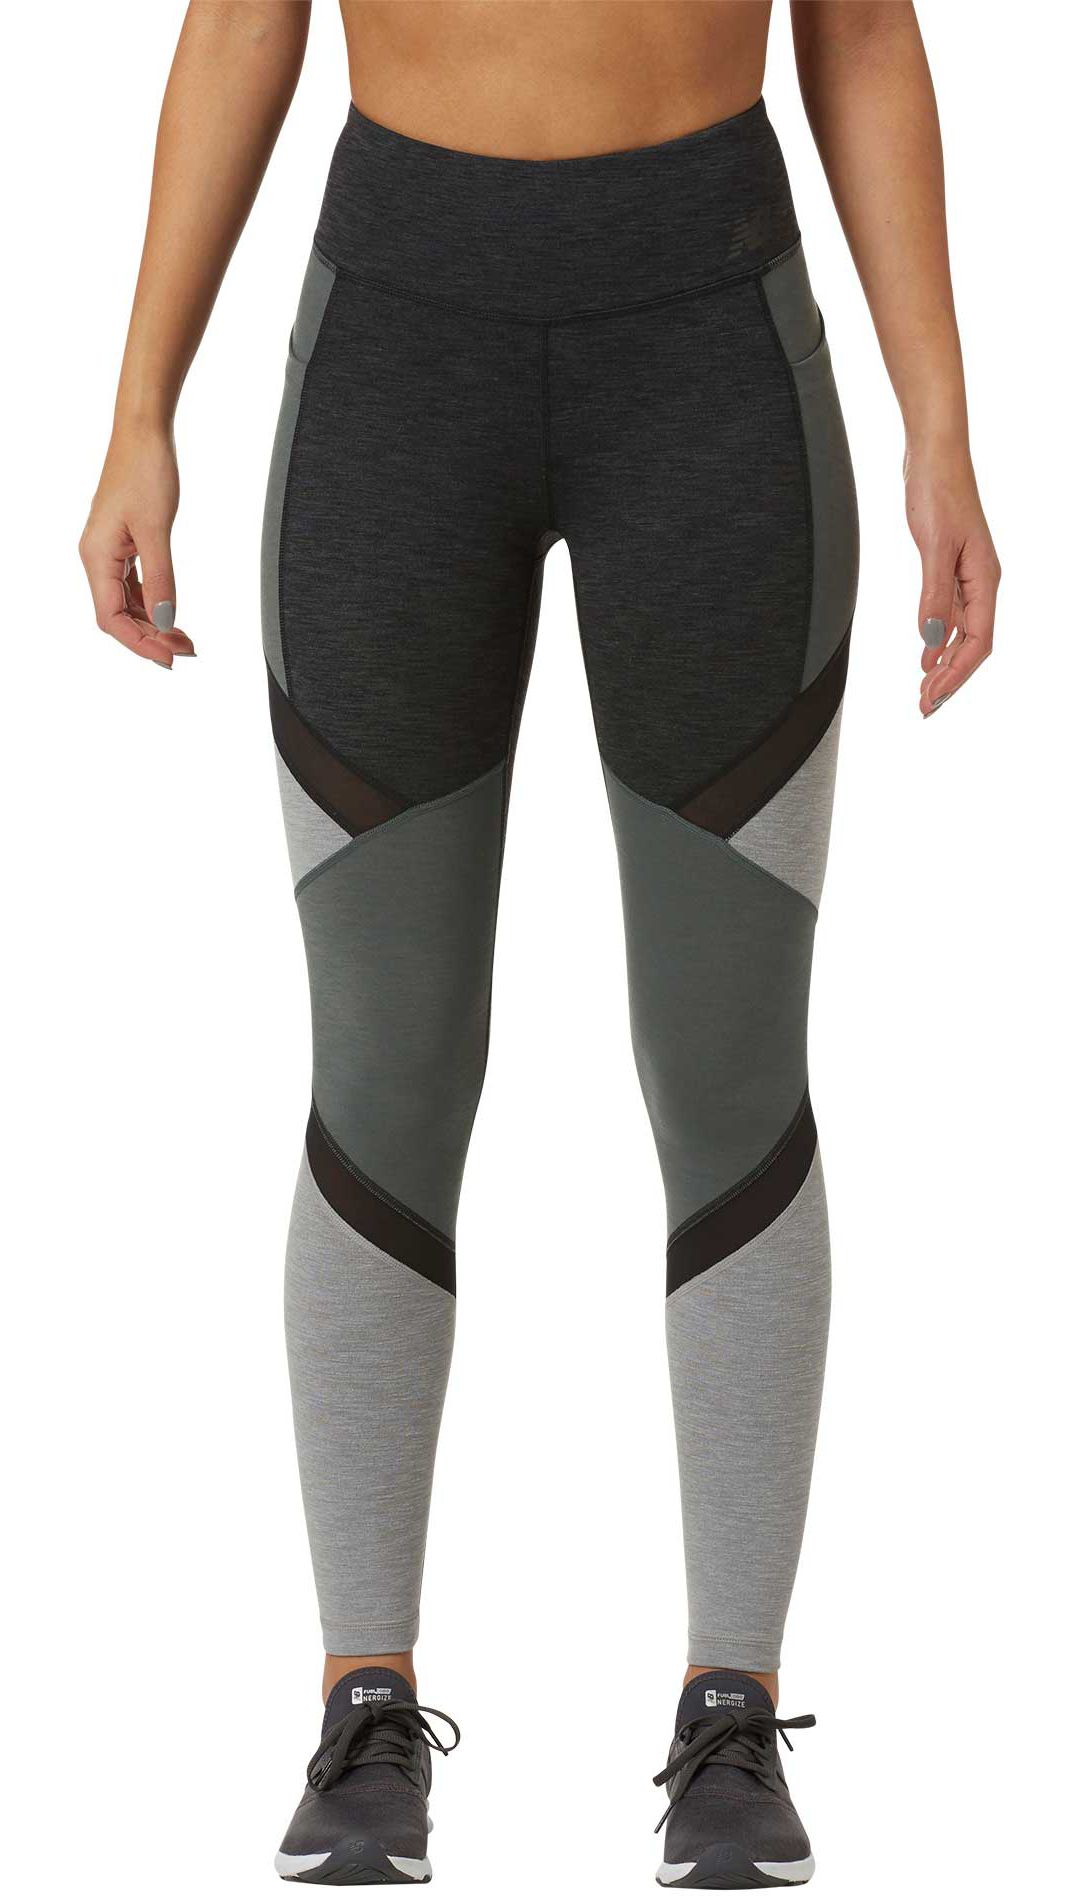 630e5578fc10ce New Balance Women's High-Rise Transform Pocket Tights | DICK'S ...